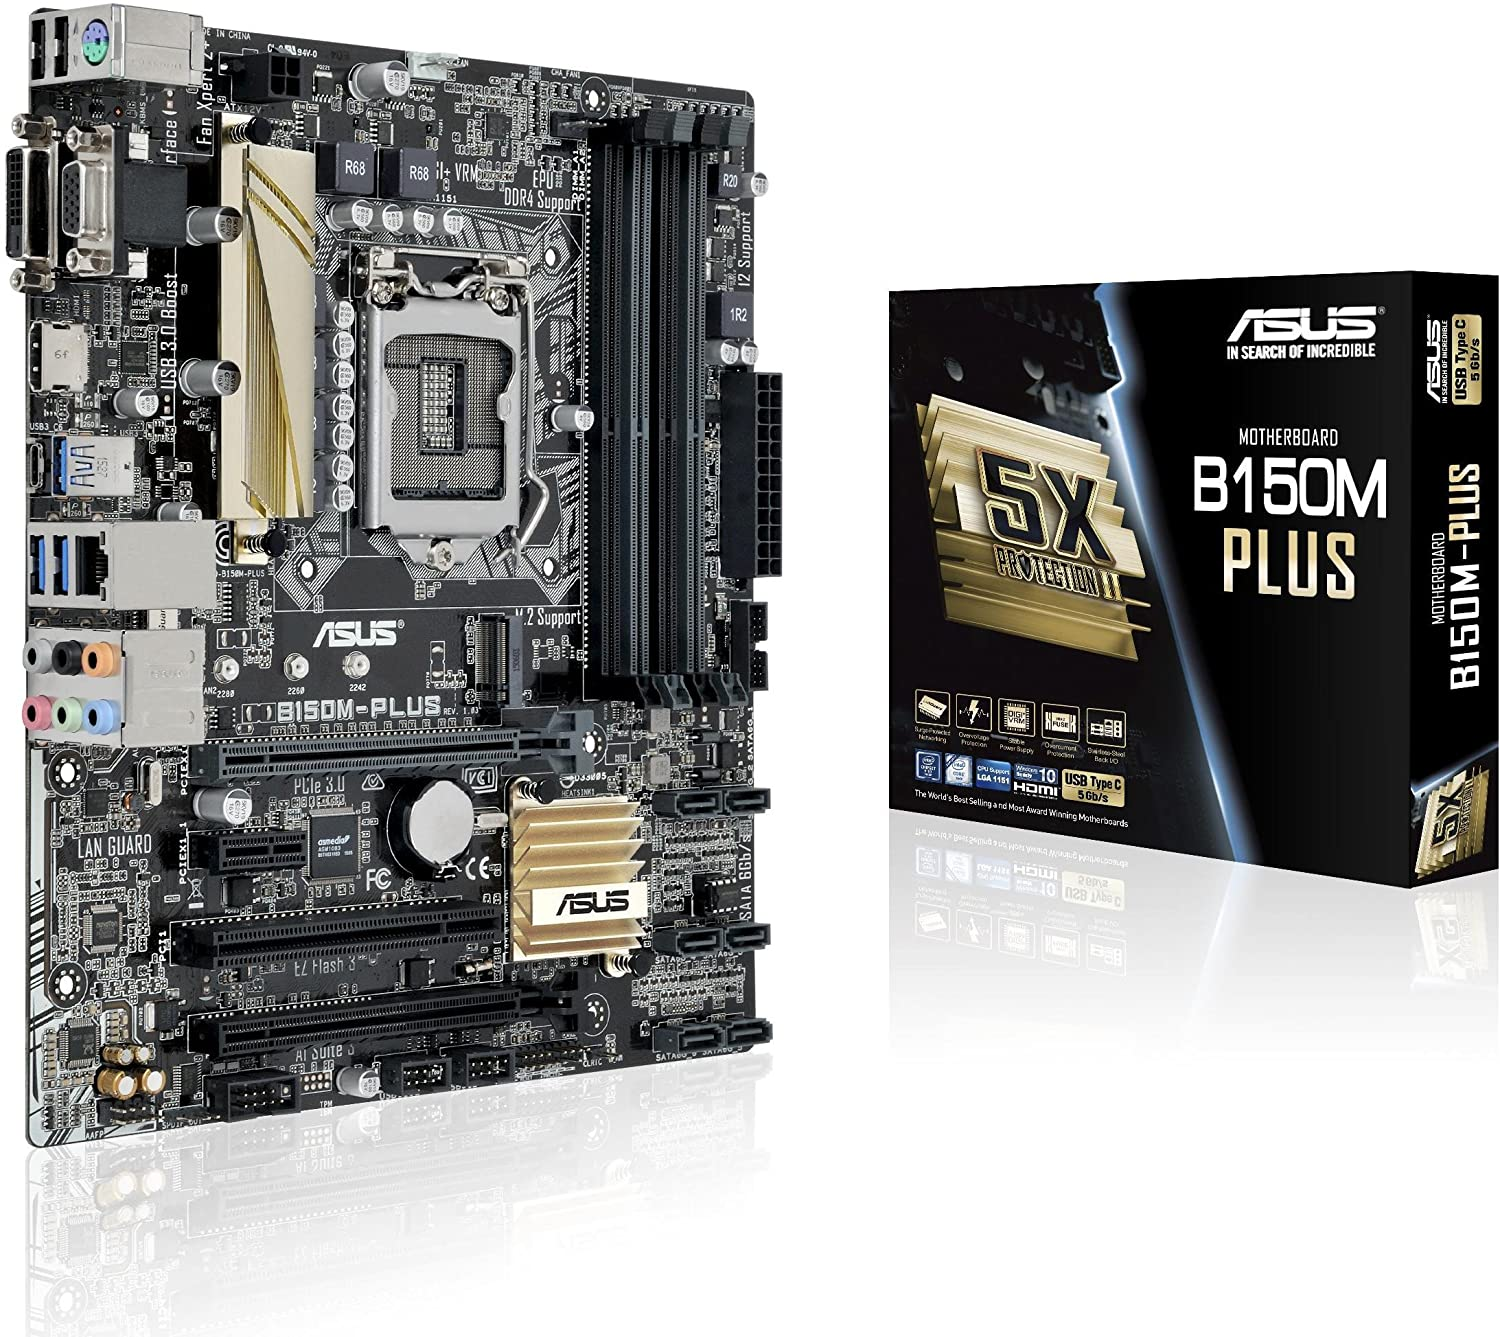 ASUS B150M-PLUS MOTHERBOARD DRIVERS FOR WINDOWS VISTA